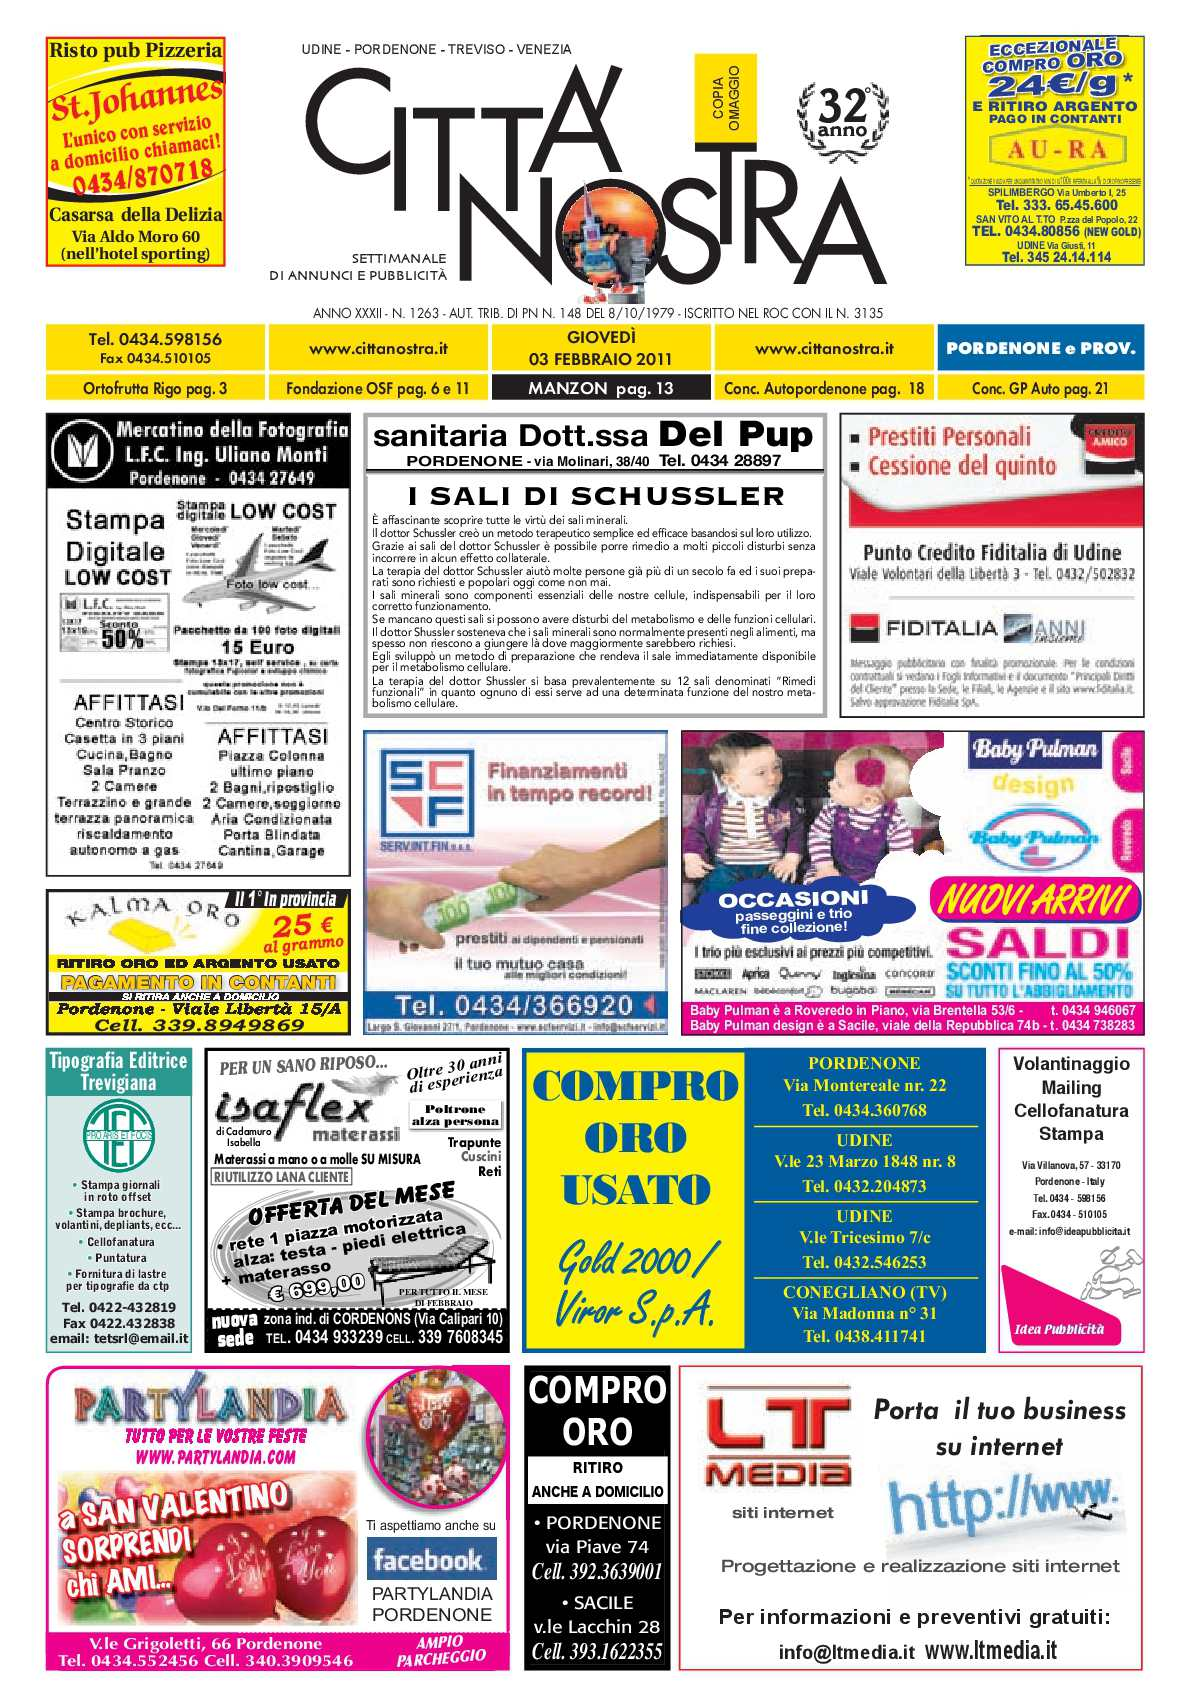 Christian Dating in movimento su